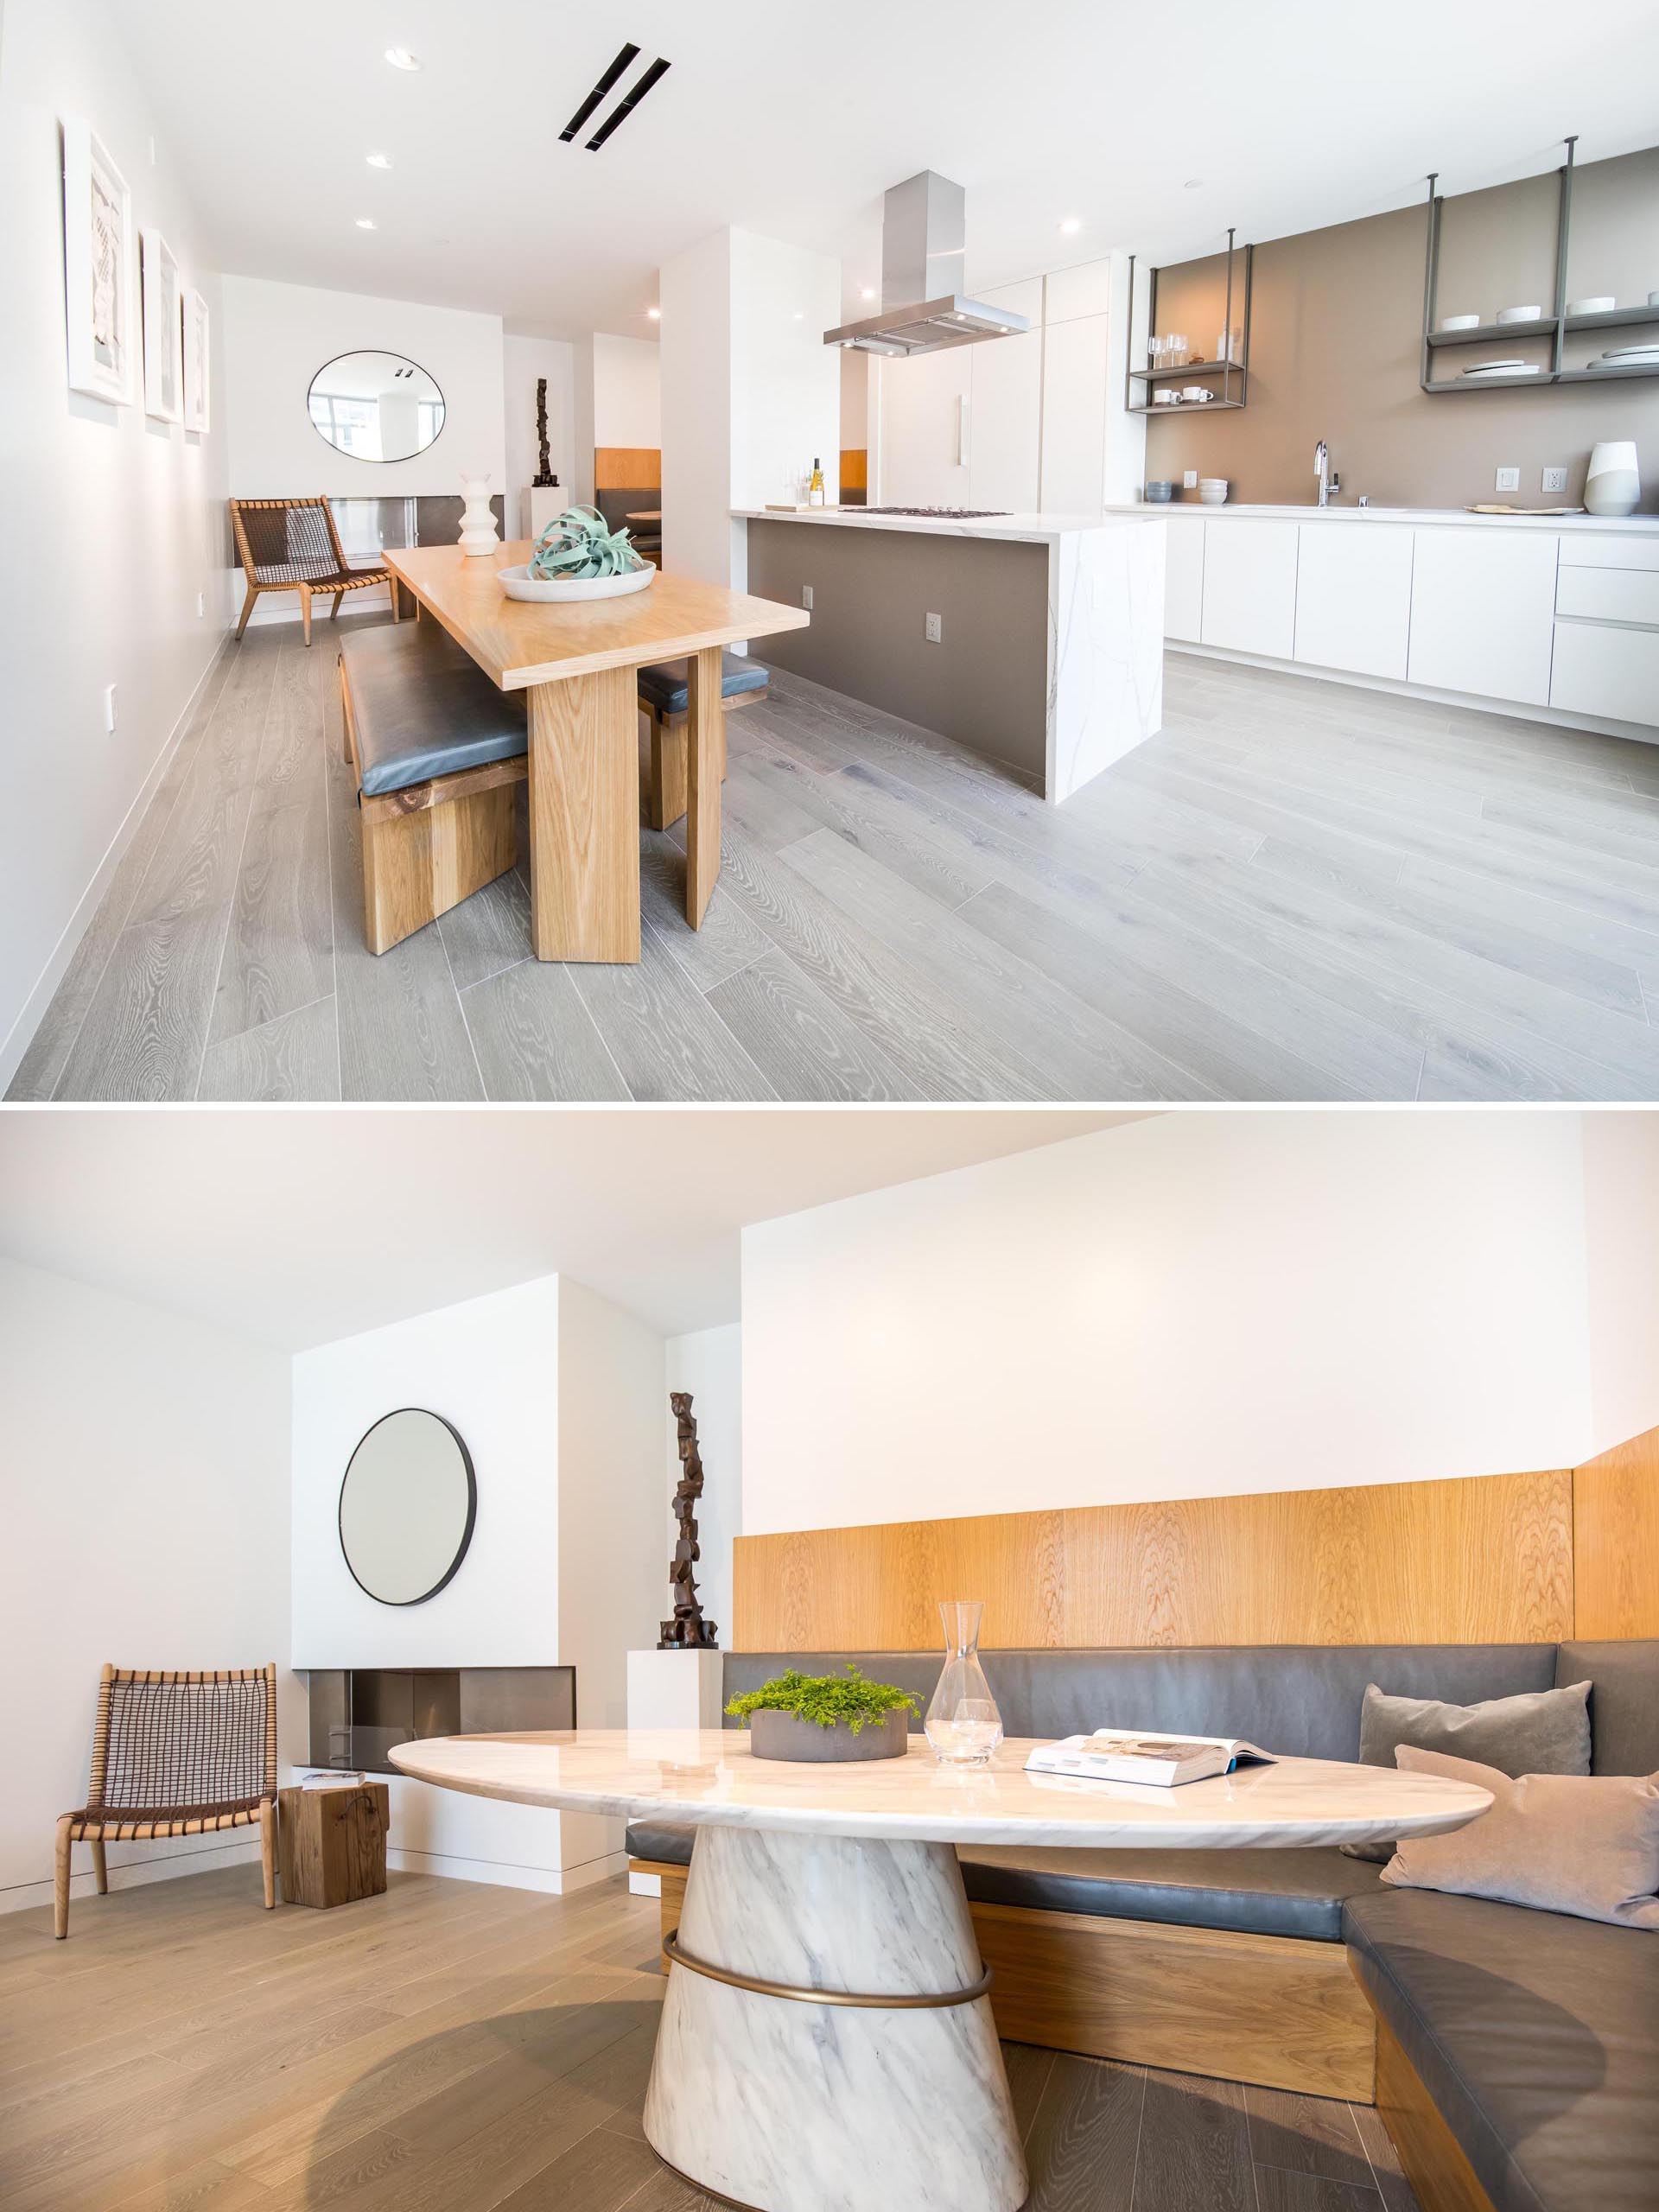 A modern kitchen and dining area with banquette seating.